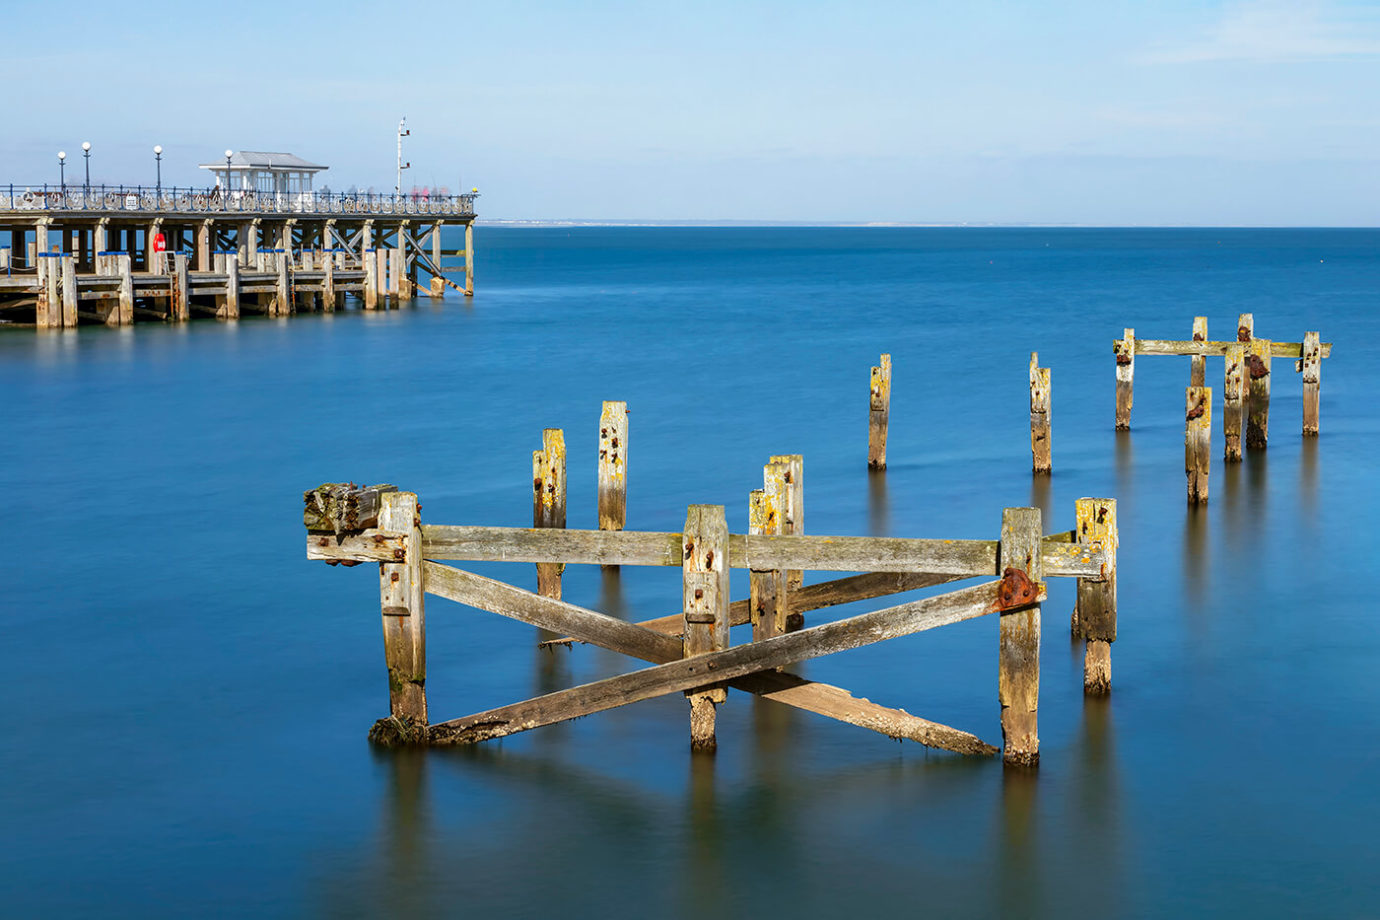 Old Pier, Swanage, Dorset